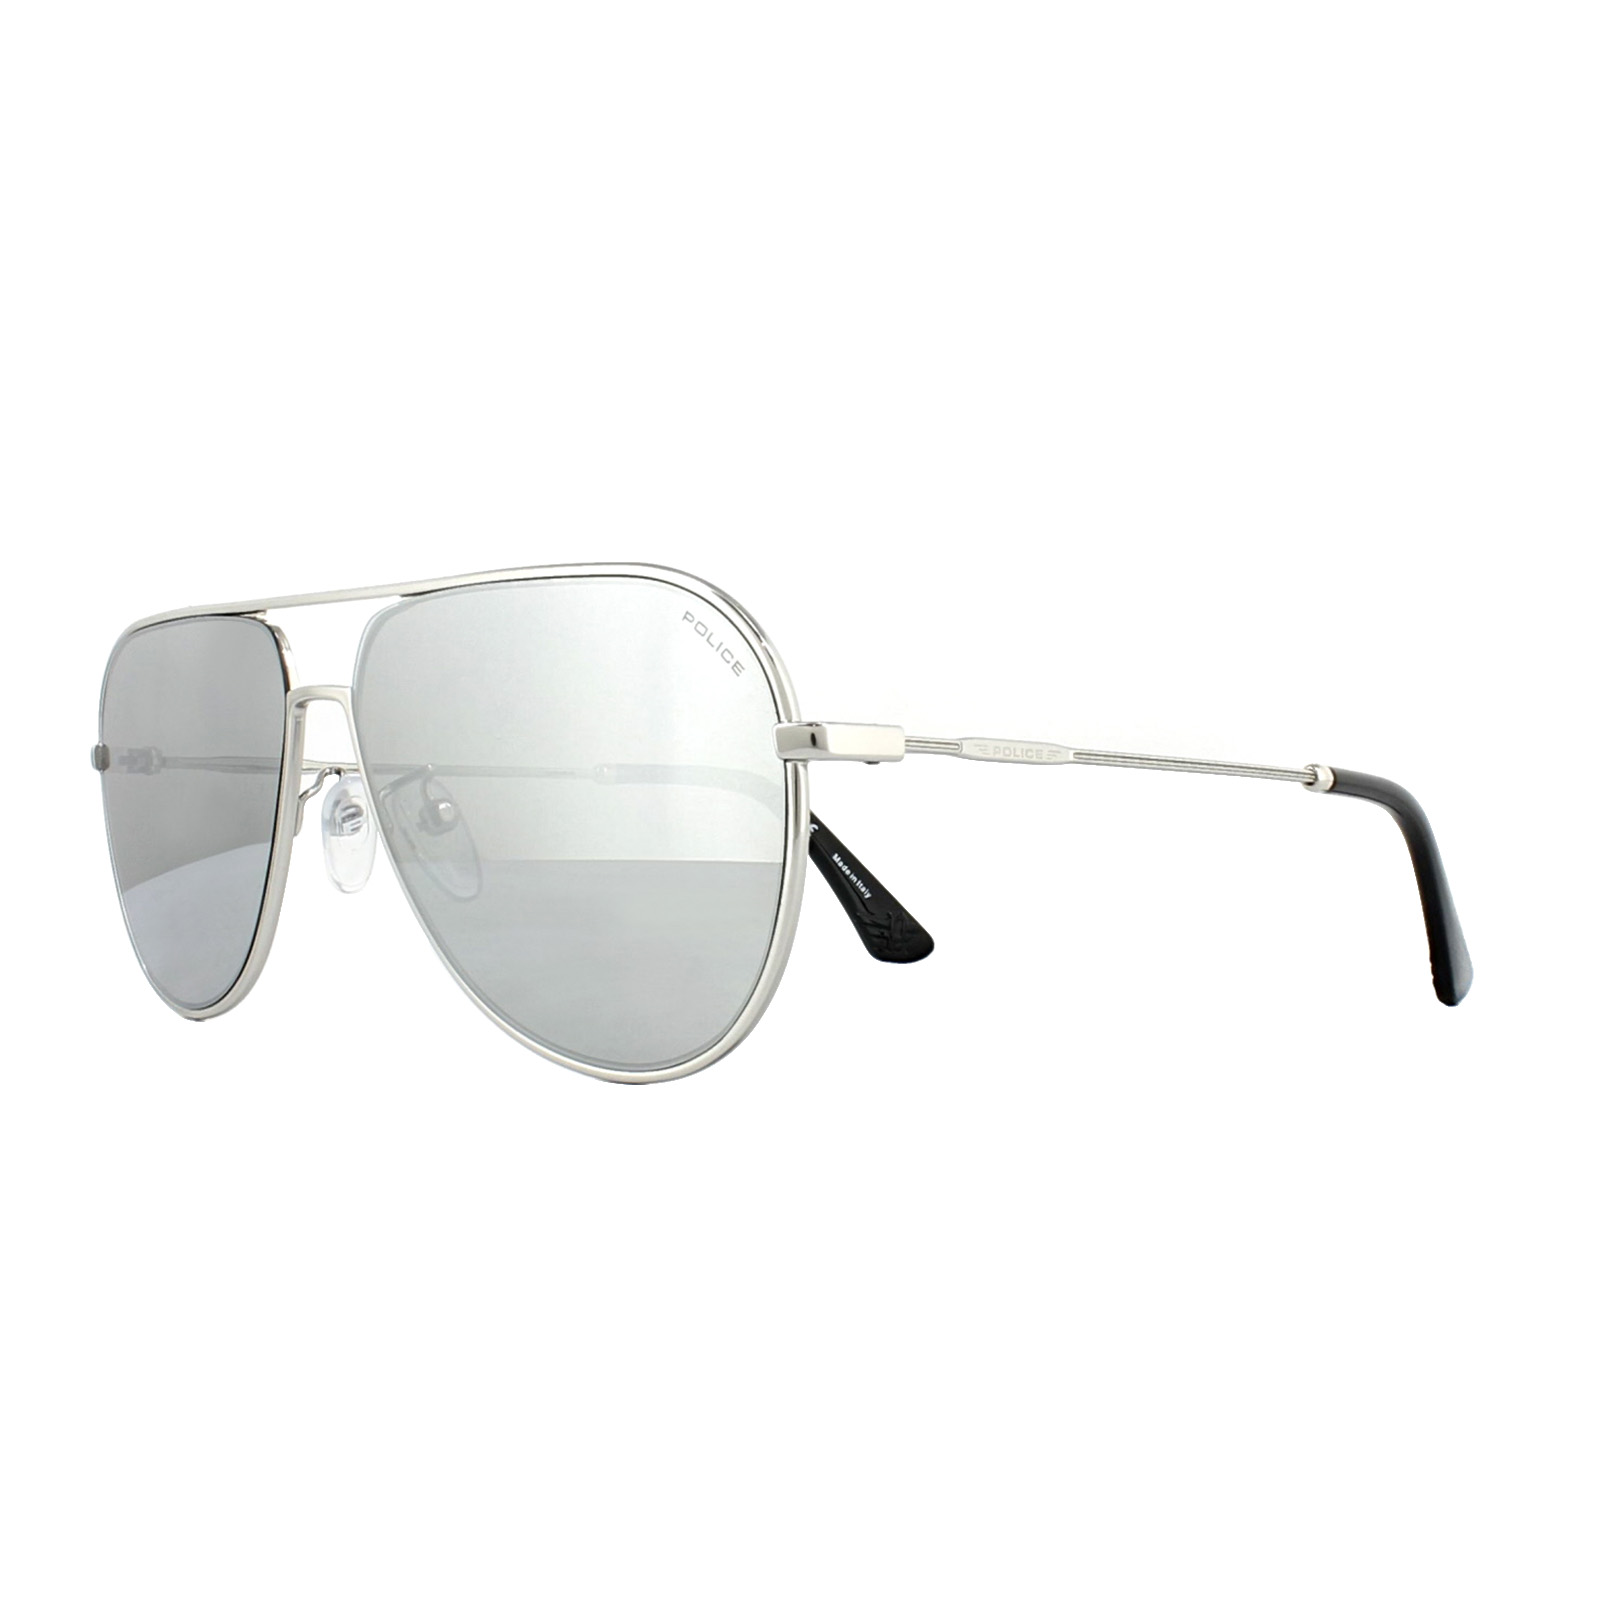 0928daac60a5f Sentinel Police Sunglasses SPL359 Highway 2 589X Shiny Palladium Grey  Silver Mirror